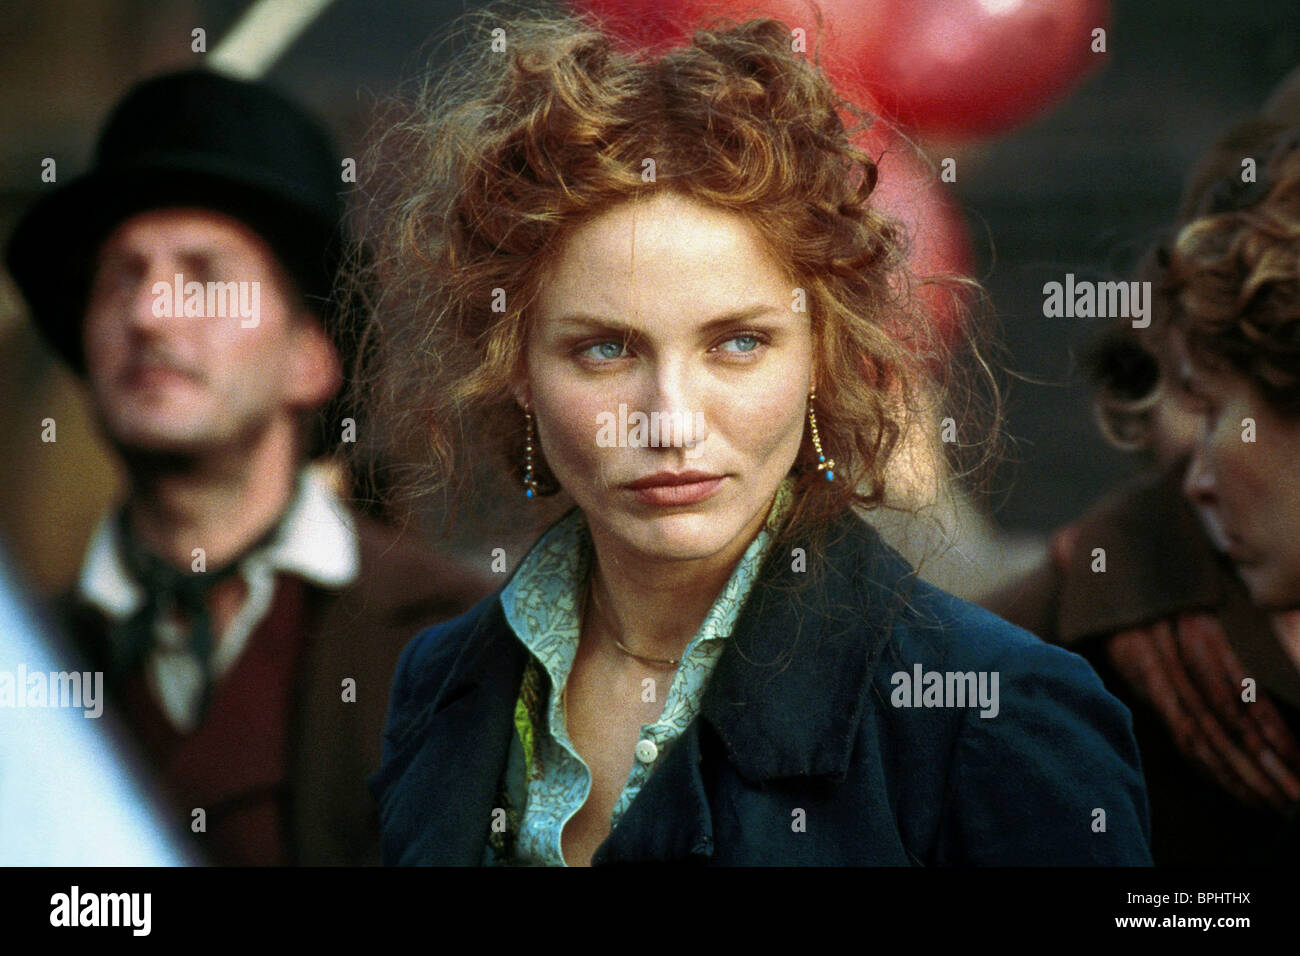 Cameron Diaz Gangs Of New York 2002 Stock Photo 31125302 Alamy